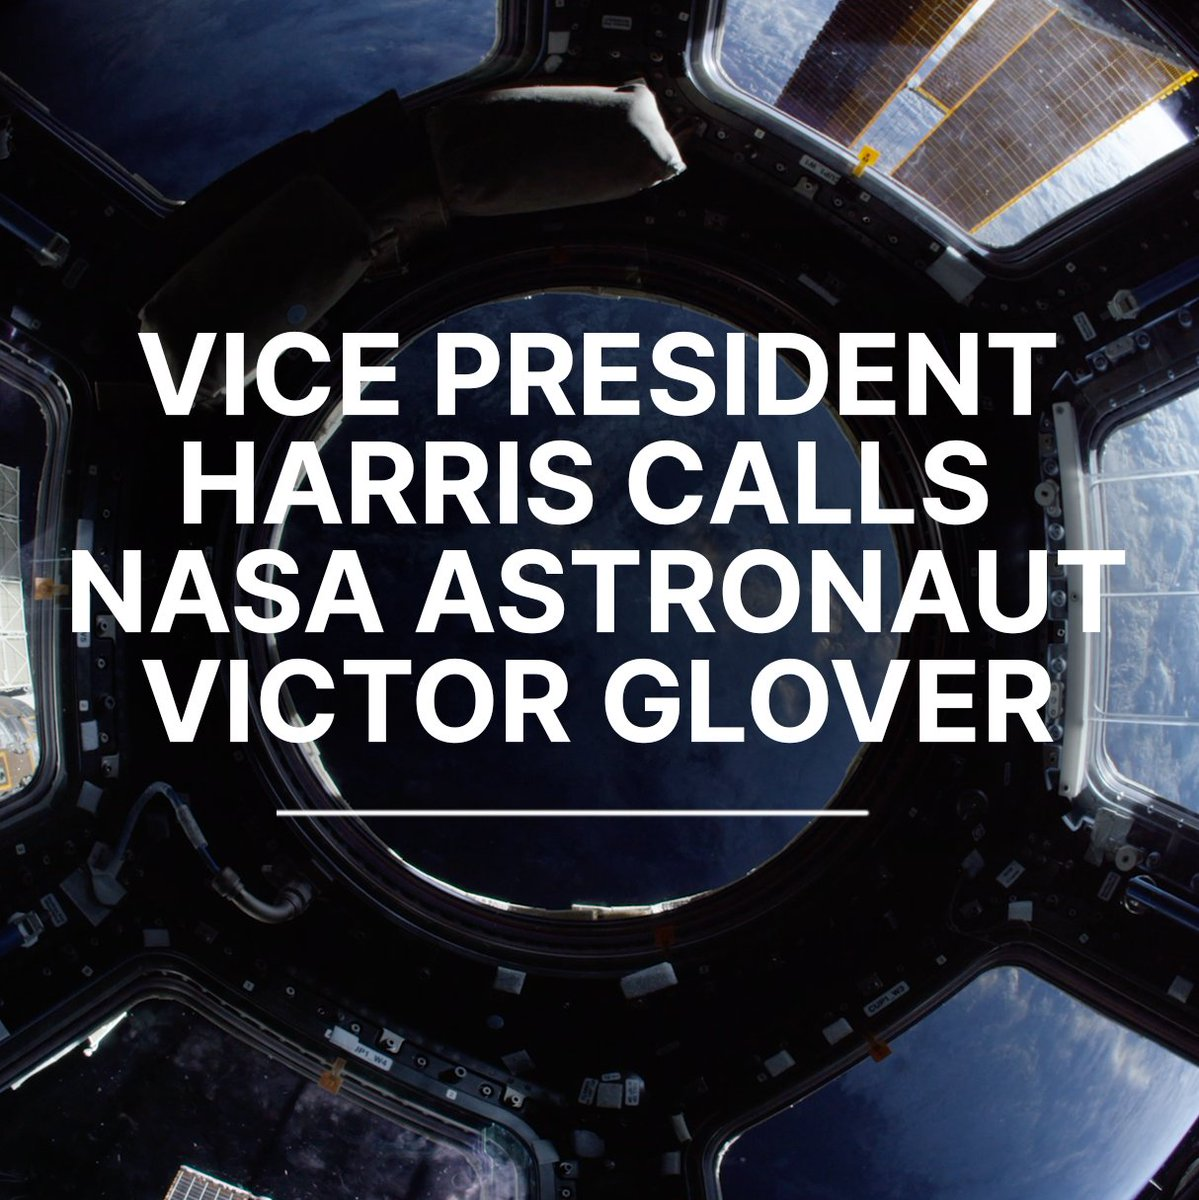 .@VP placed a special phone call to space when she spoke with astronaut @AstroVicGlover, currently aboard the @Space_Station. Watch the exchange in celebration of #BlackHistoryMonth: